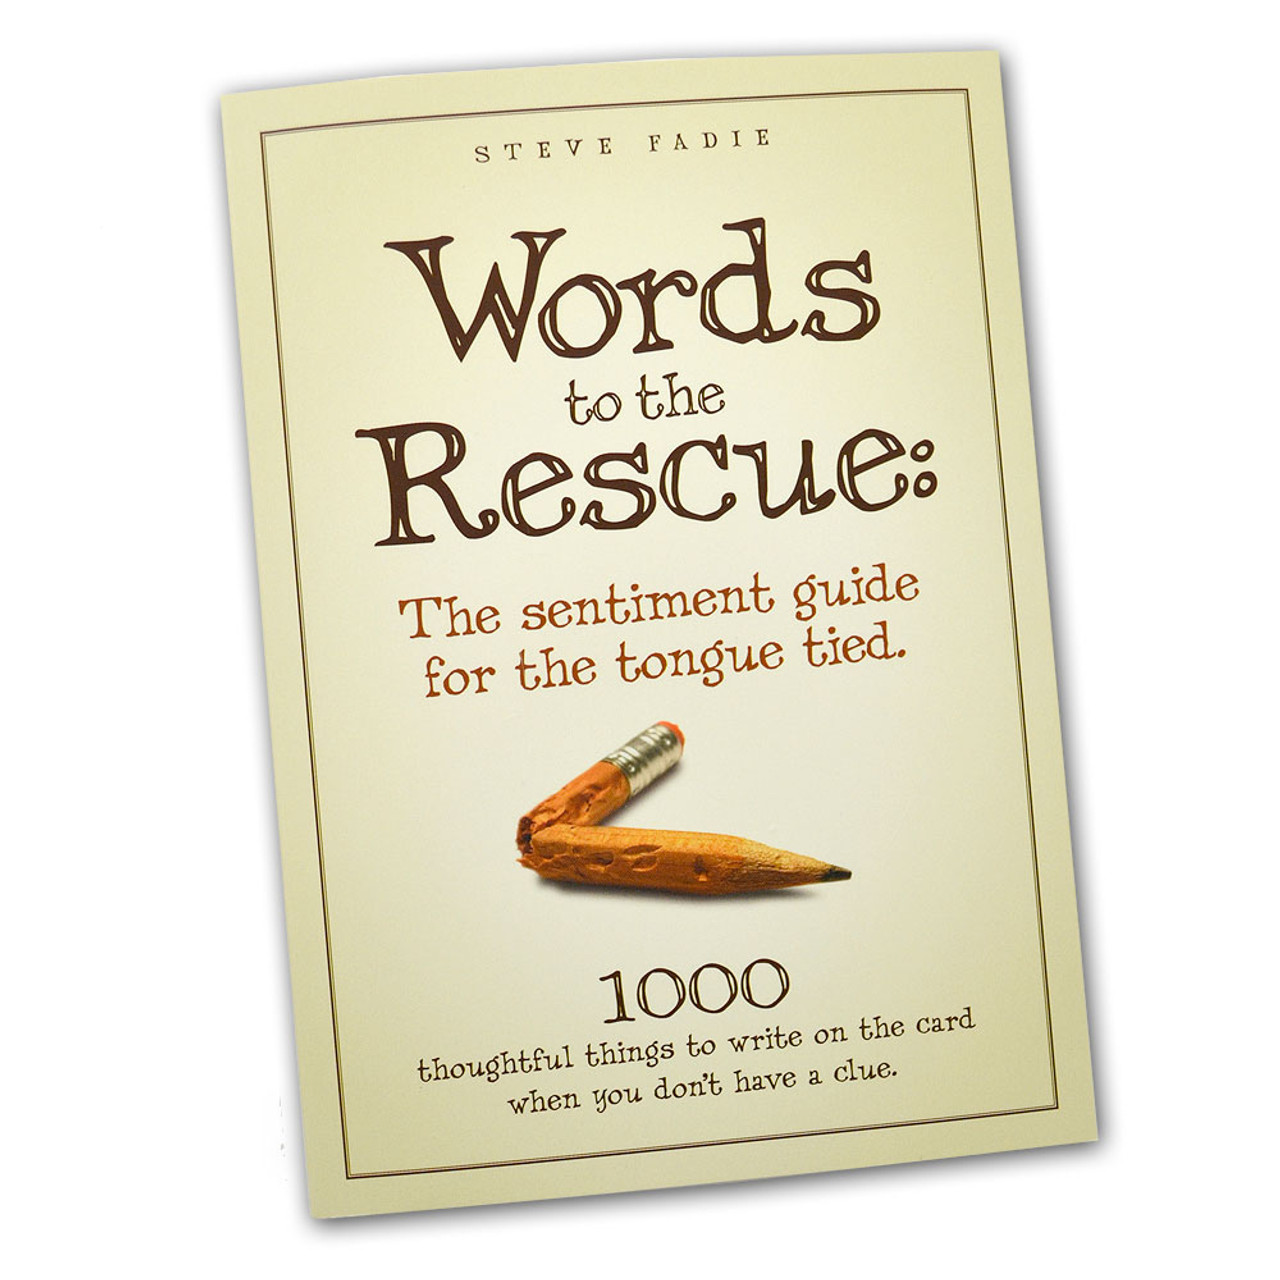 Words to the Rescue  Steve Fadie Paperback